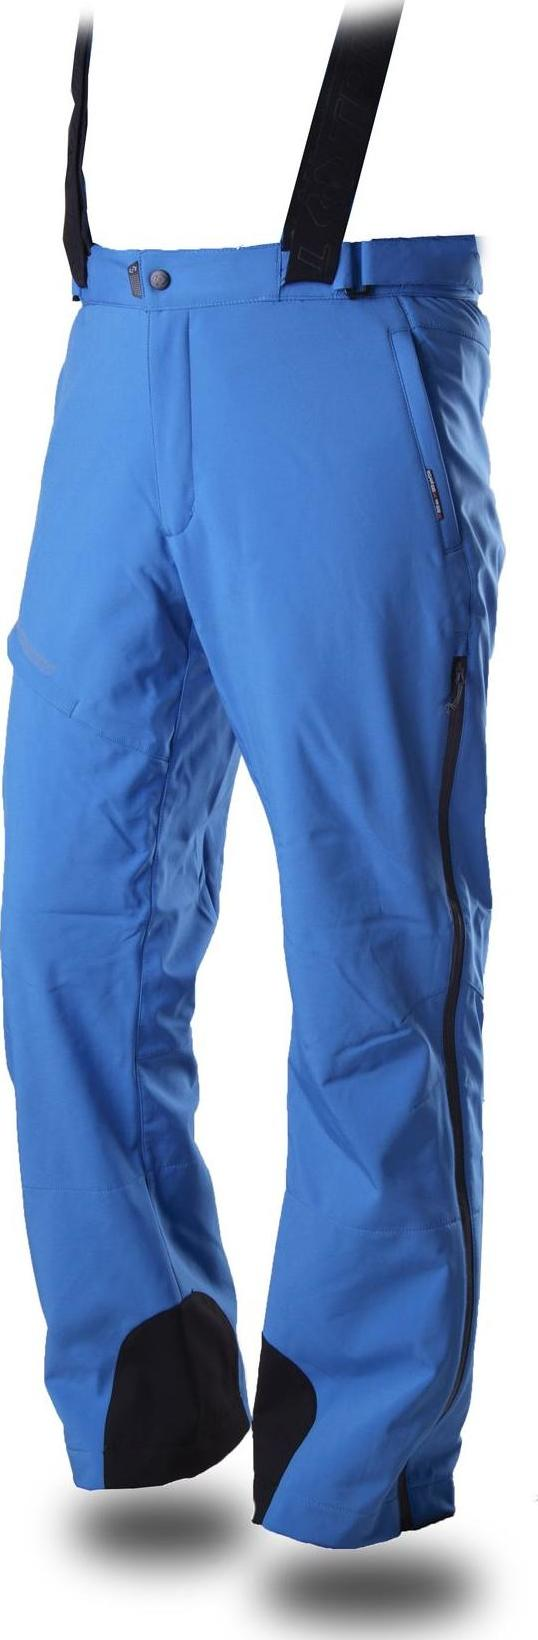 Trimm Excel blue Velikost: XL